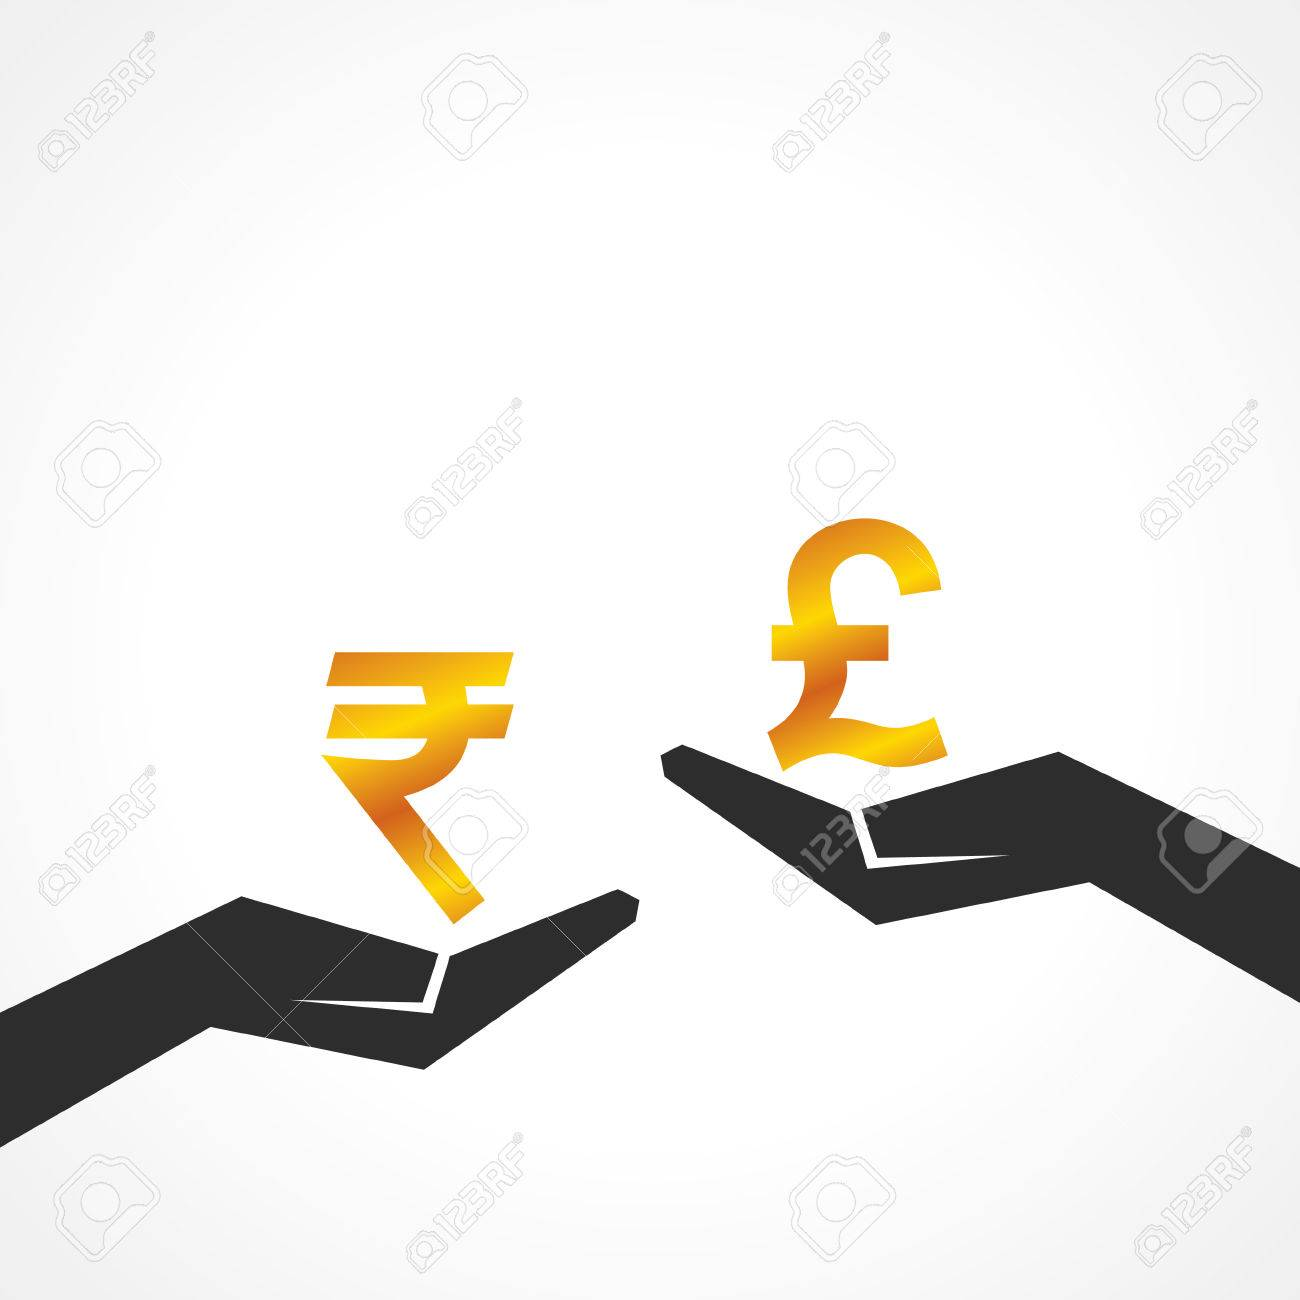 Hand Hold Rupee And Pound Symbol To Compare Their Value Stock